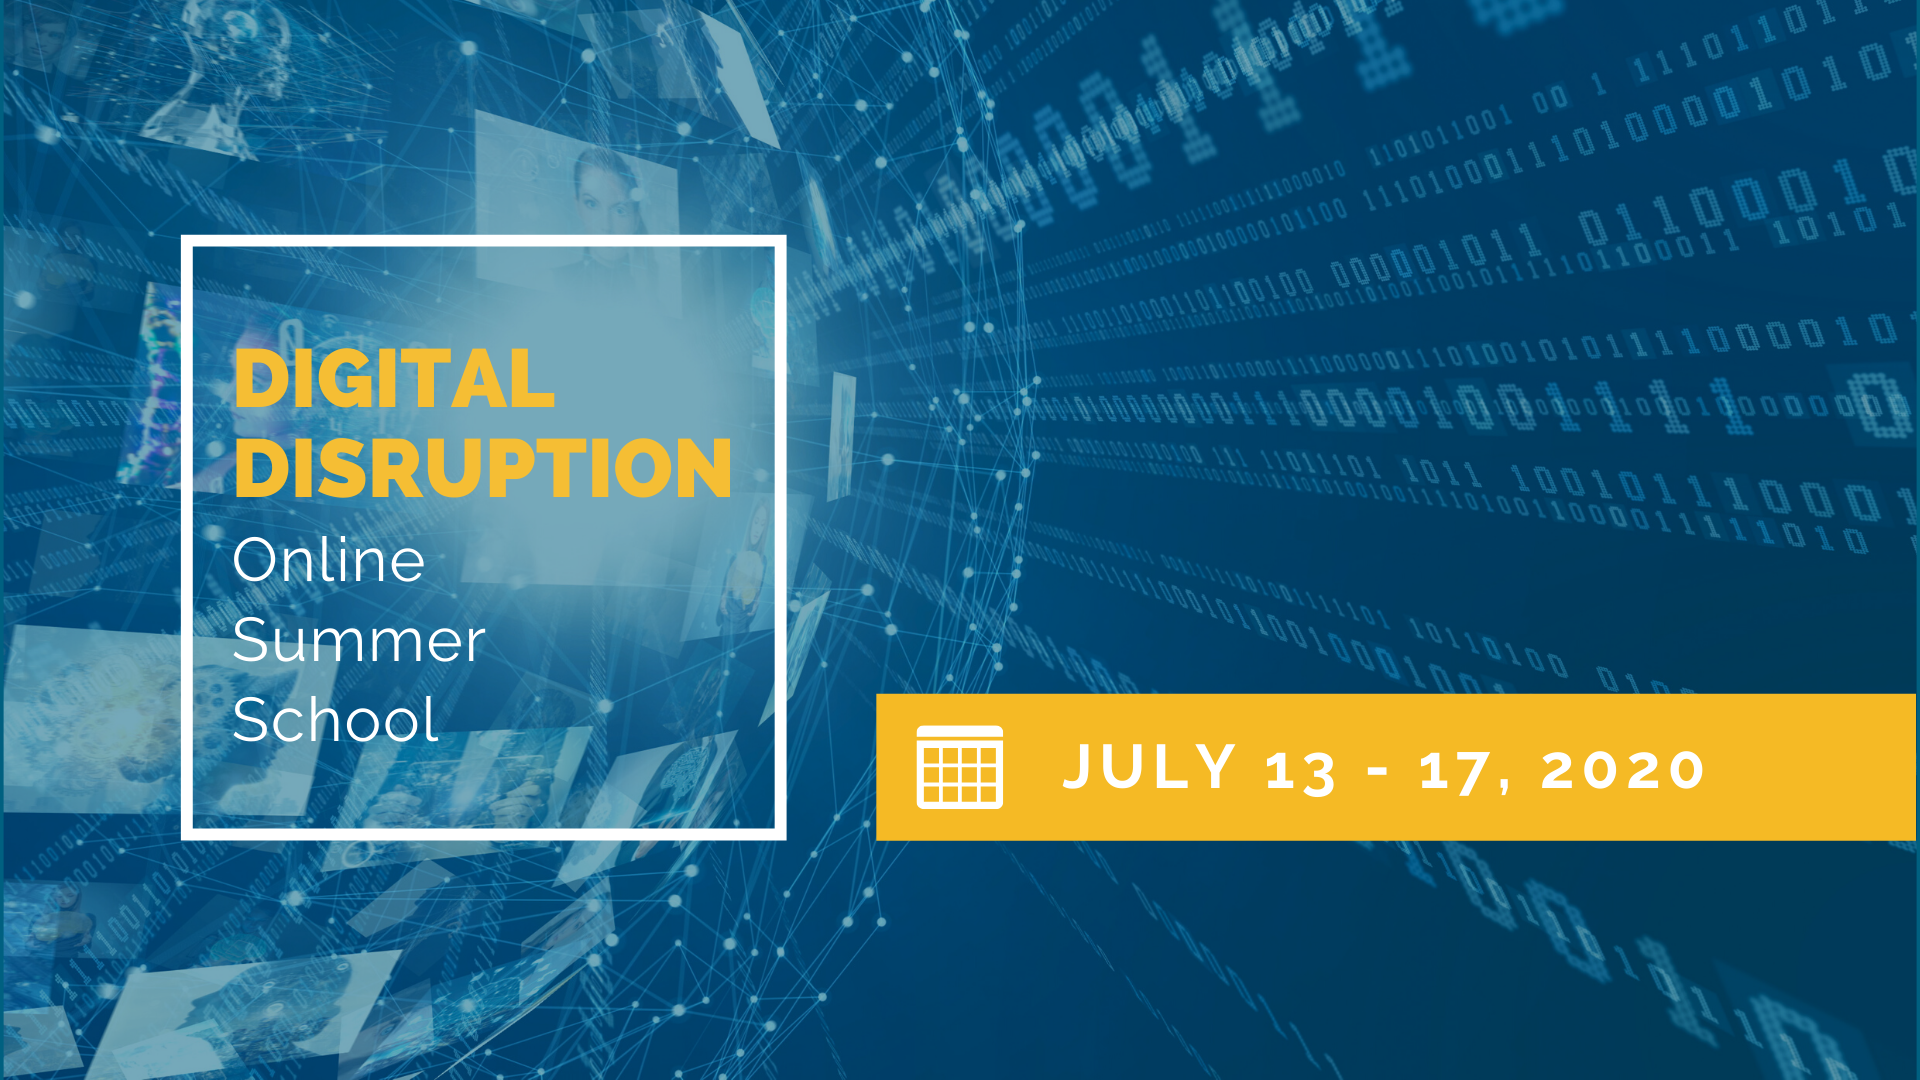 Online Summer School at Faculty of Business Administration: Digital Disruption